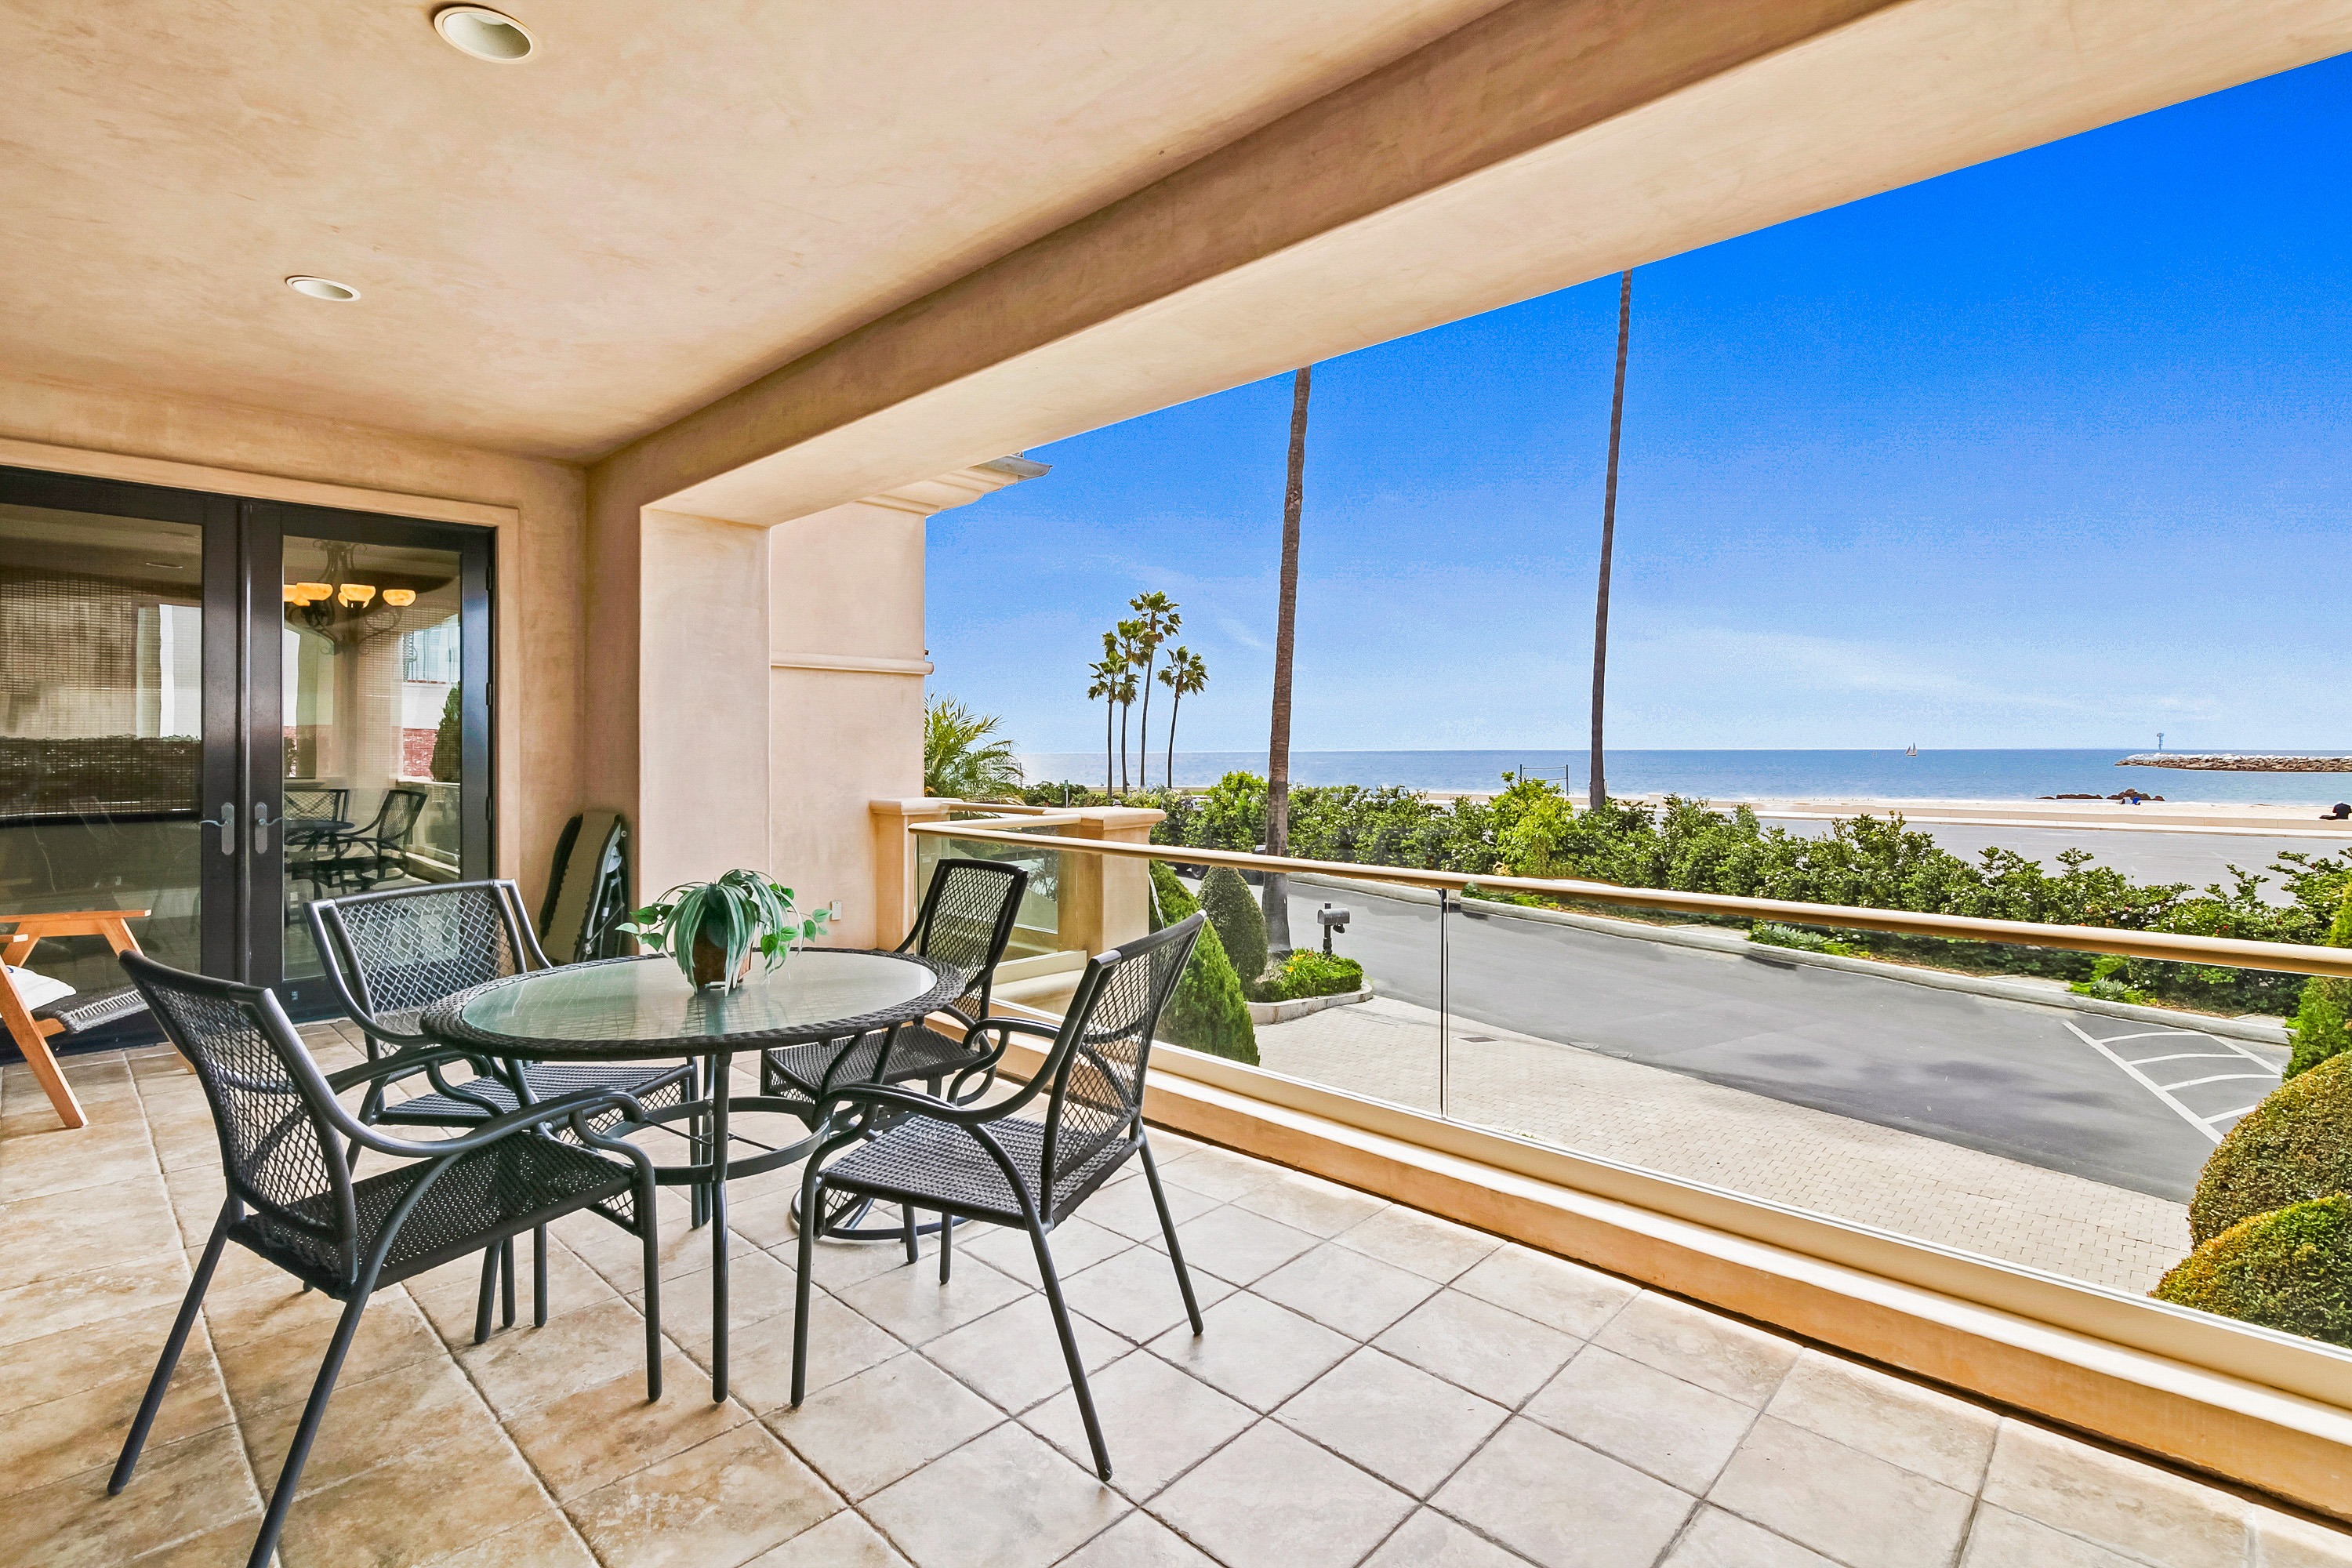 Corona del Mar CA Vacation Rental Welcome to Corona